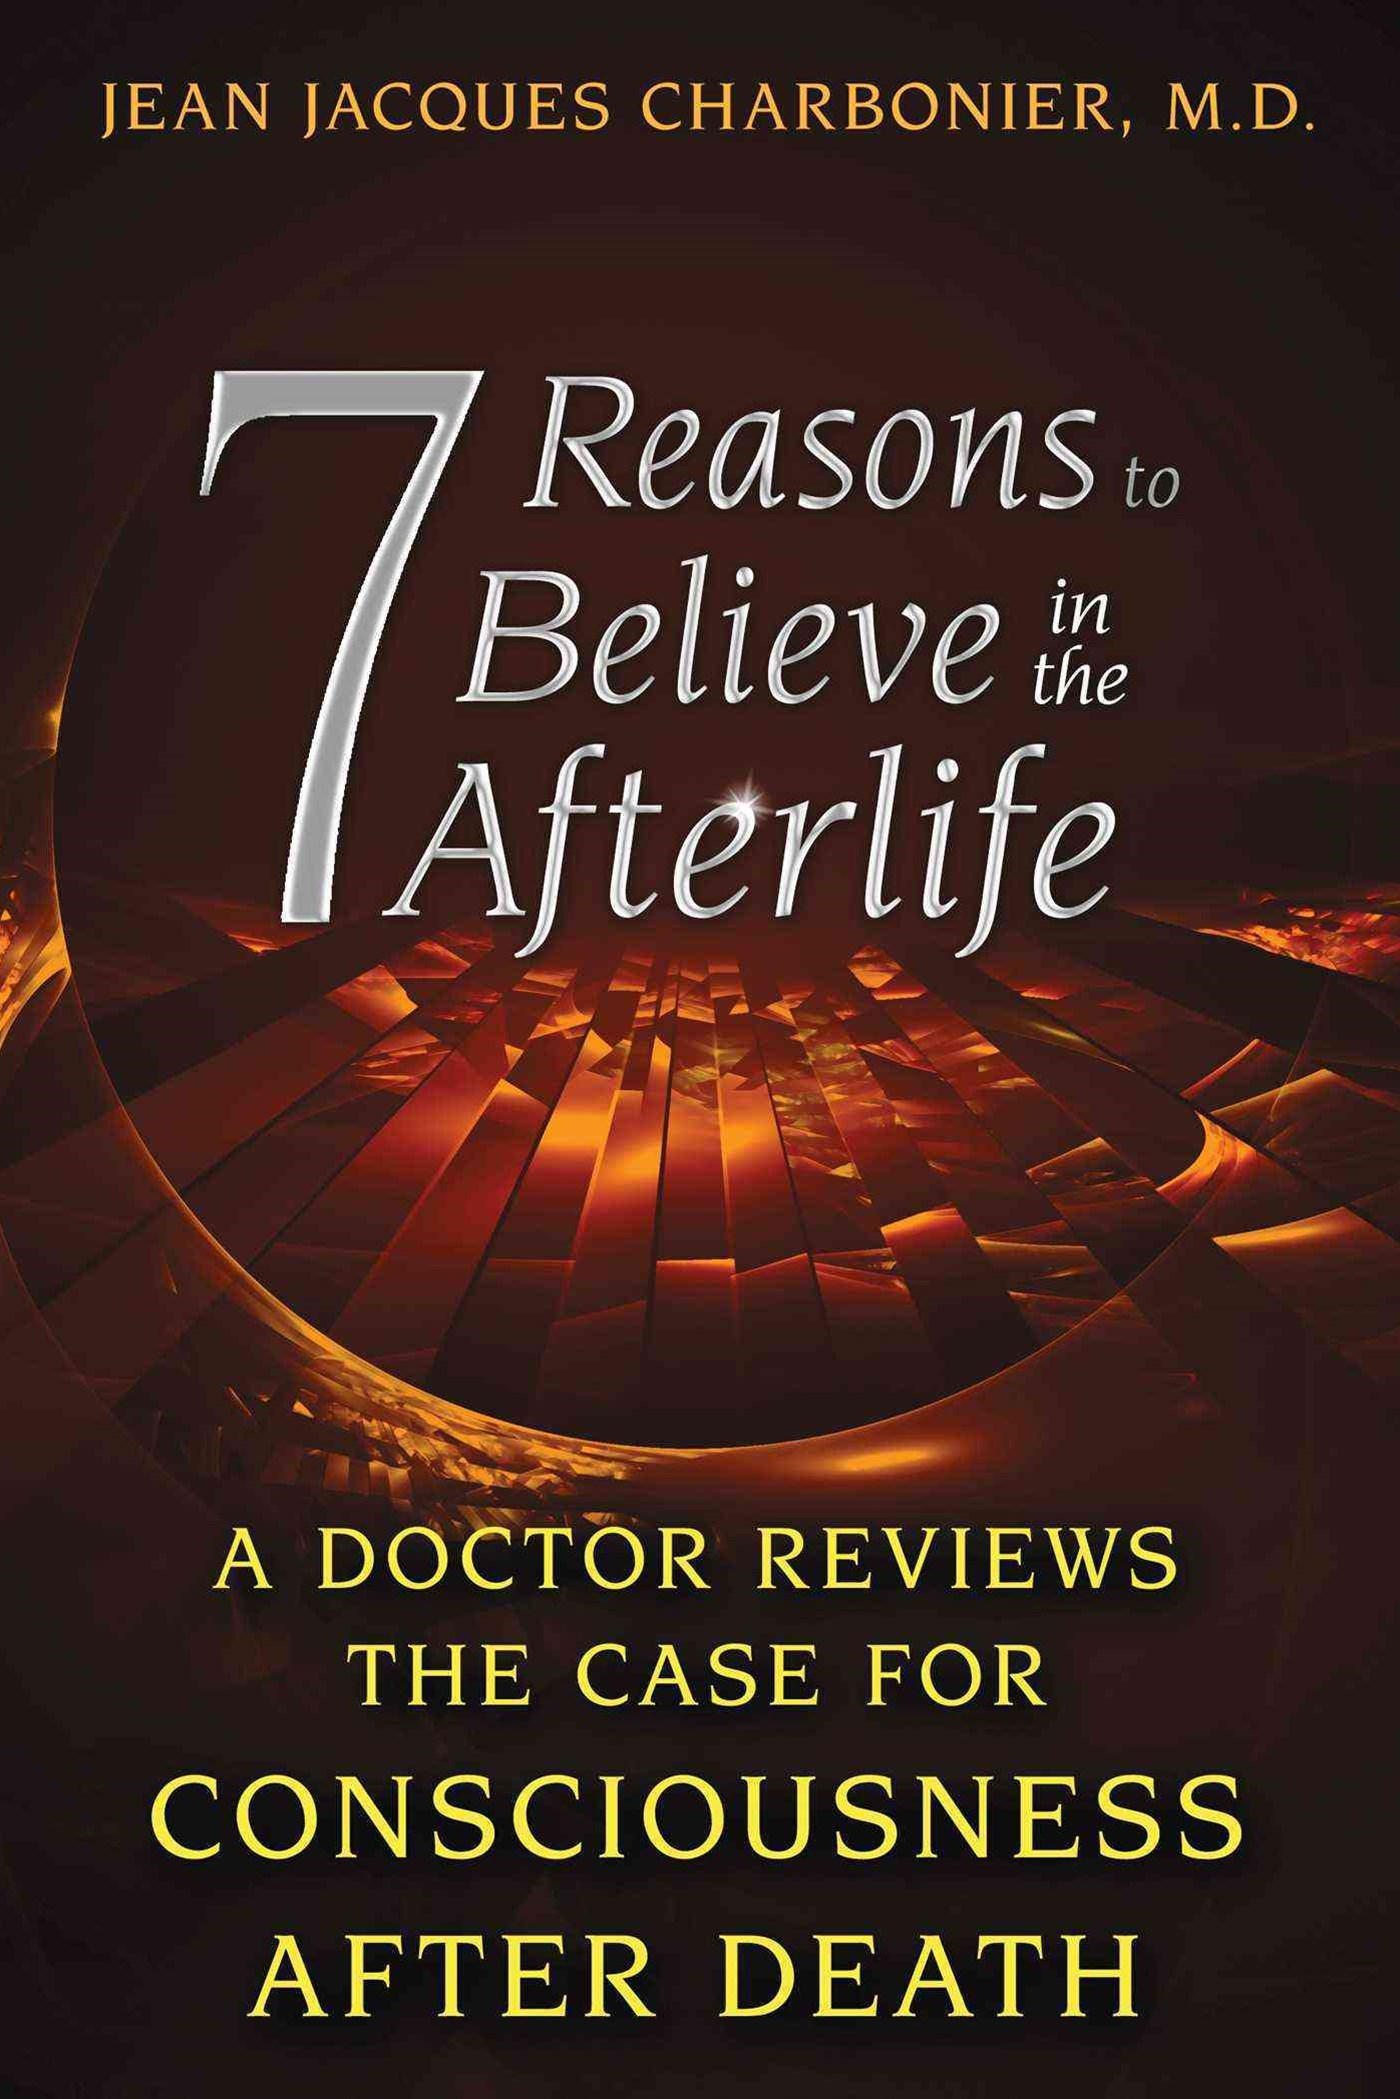 7 Reasons to Believe in the Afterlife